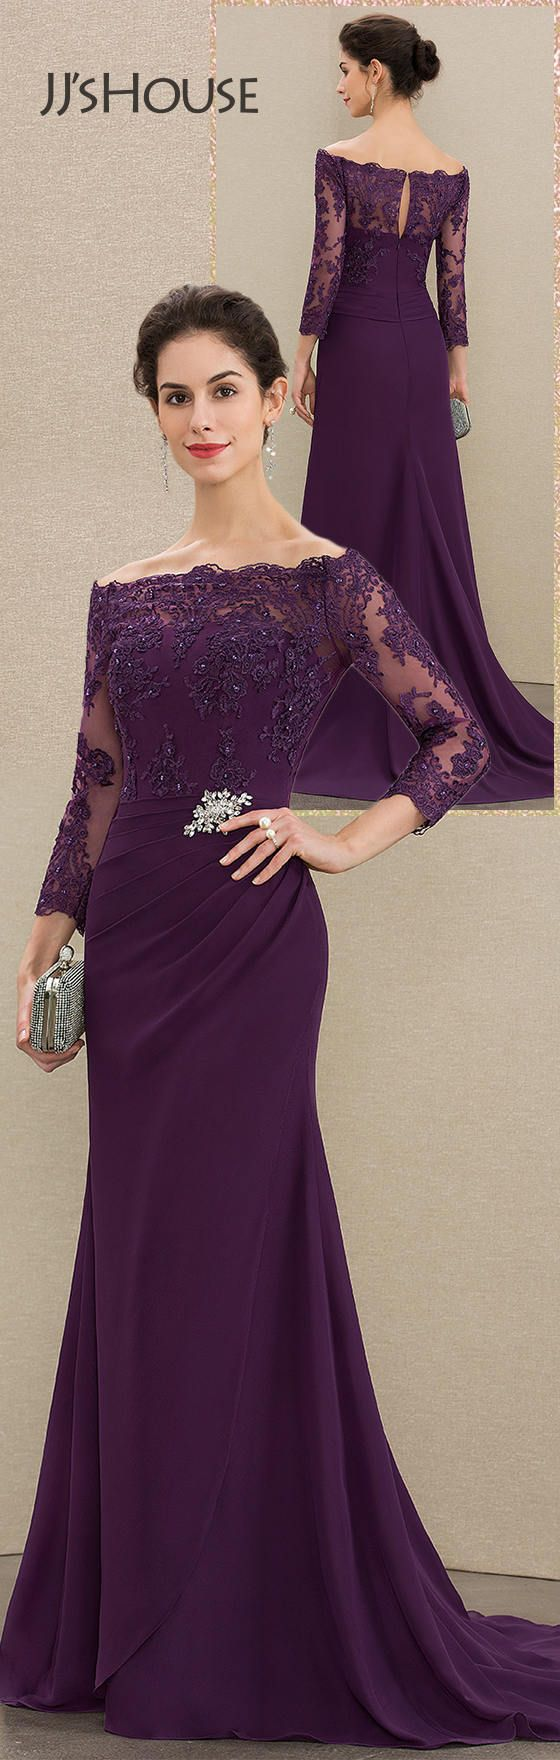 JJsHouse Trumpet/Mermaid Off-the-Shoulder Sweep Train Chiffon Lace Mother of the Bride Dress With Be